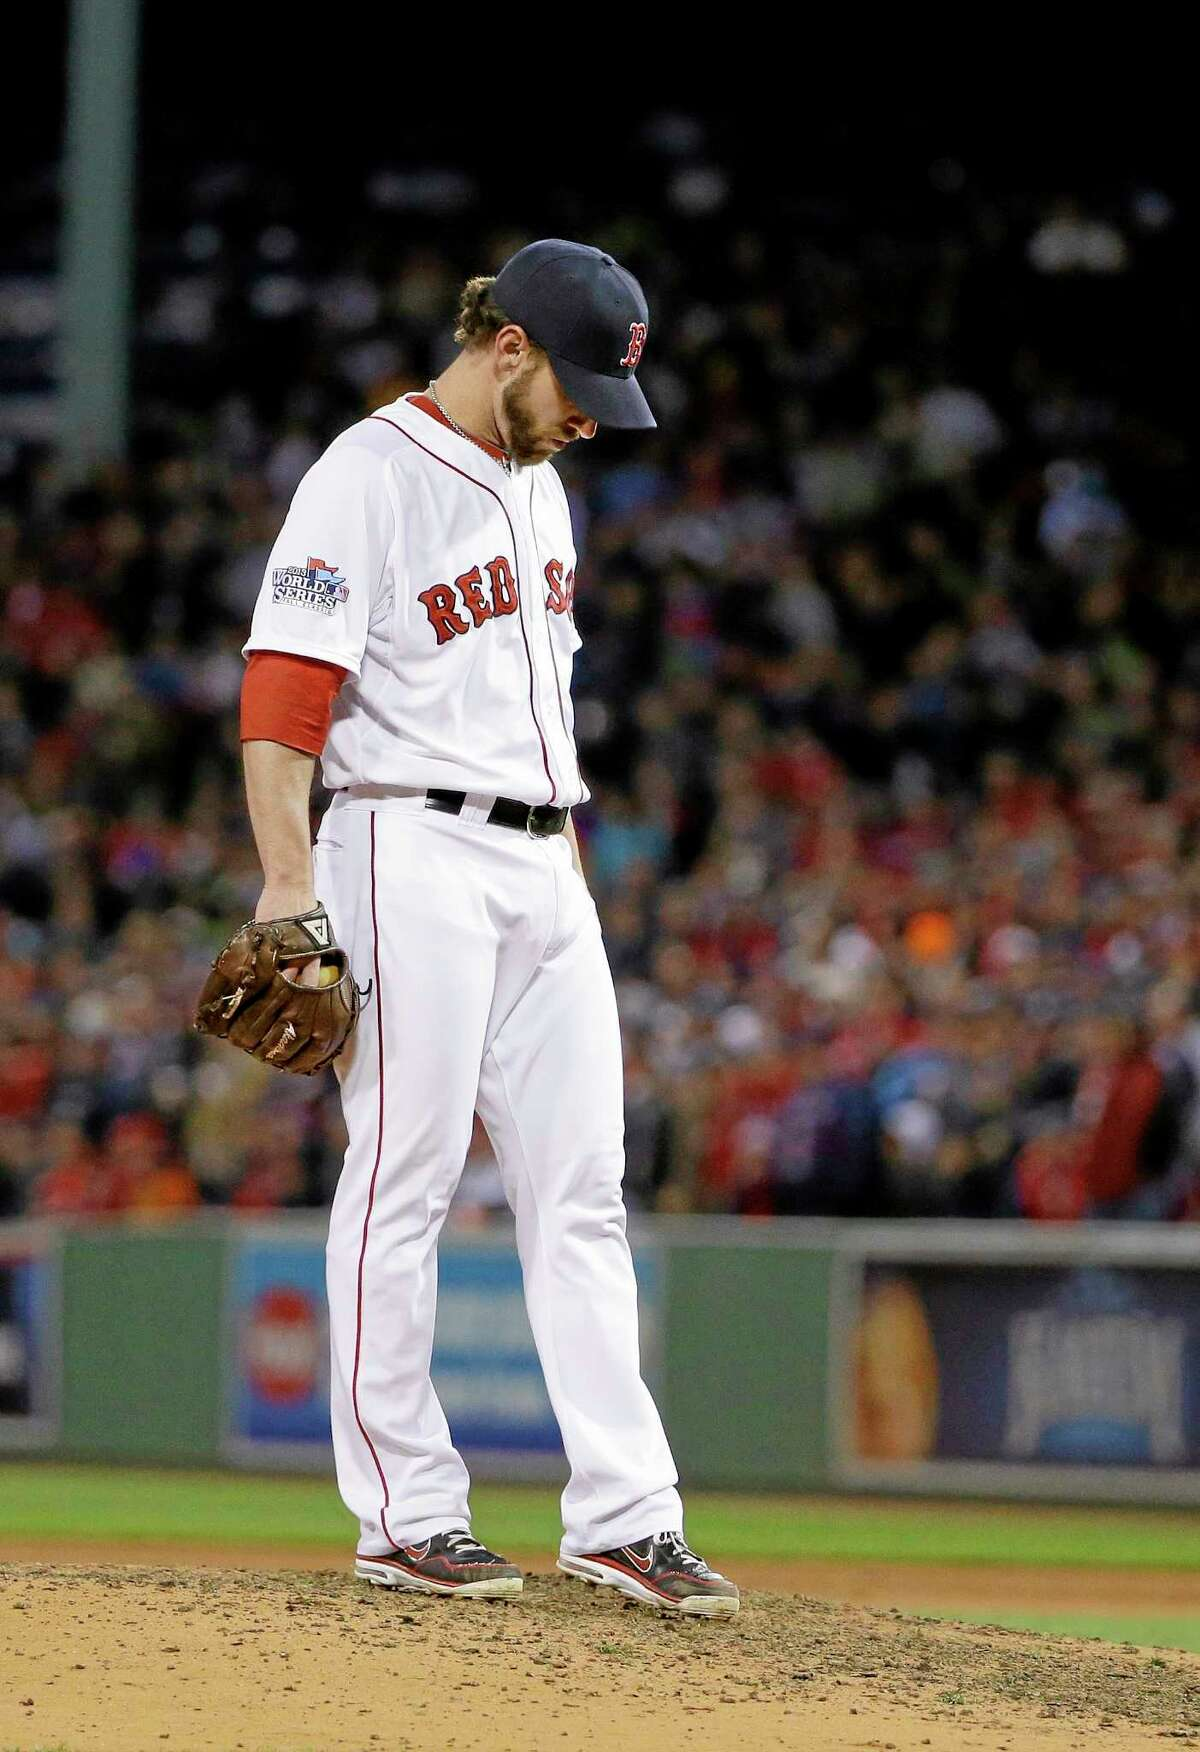 Red Sox reliever Craig Breslow waits to be taken out during the seventh inning on Thursday.